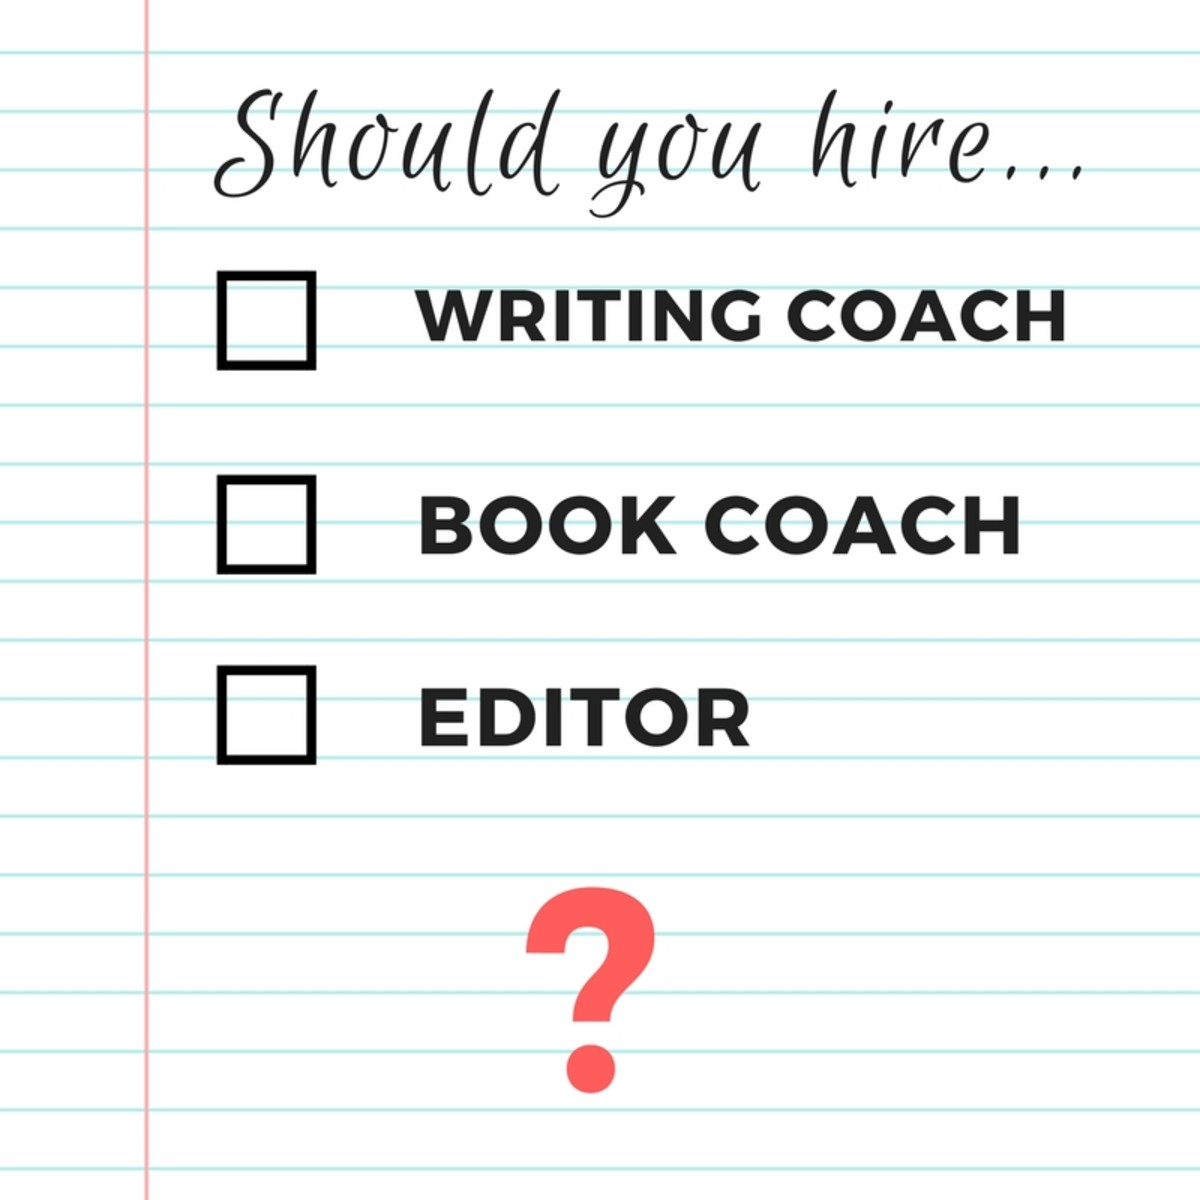 Editors, book coaches, and writing coaches all do slightly different things. Learn about what they do before deciding who to hire.